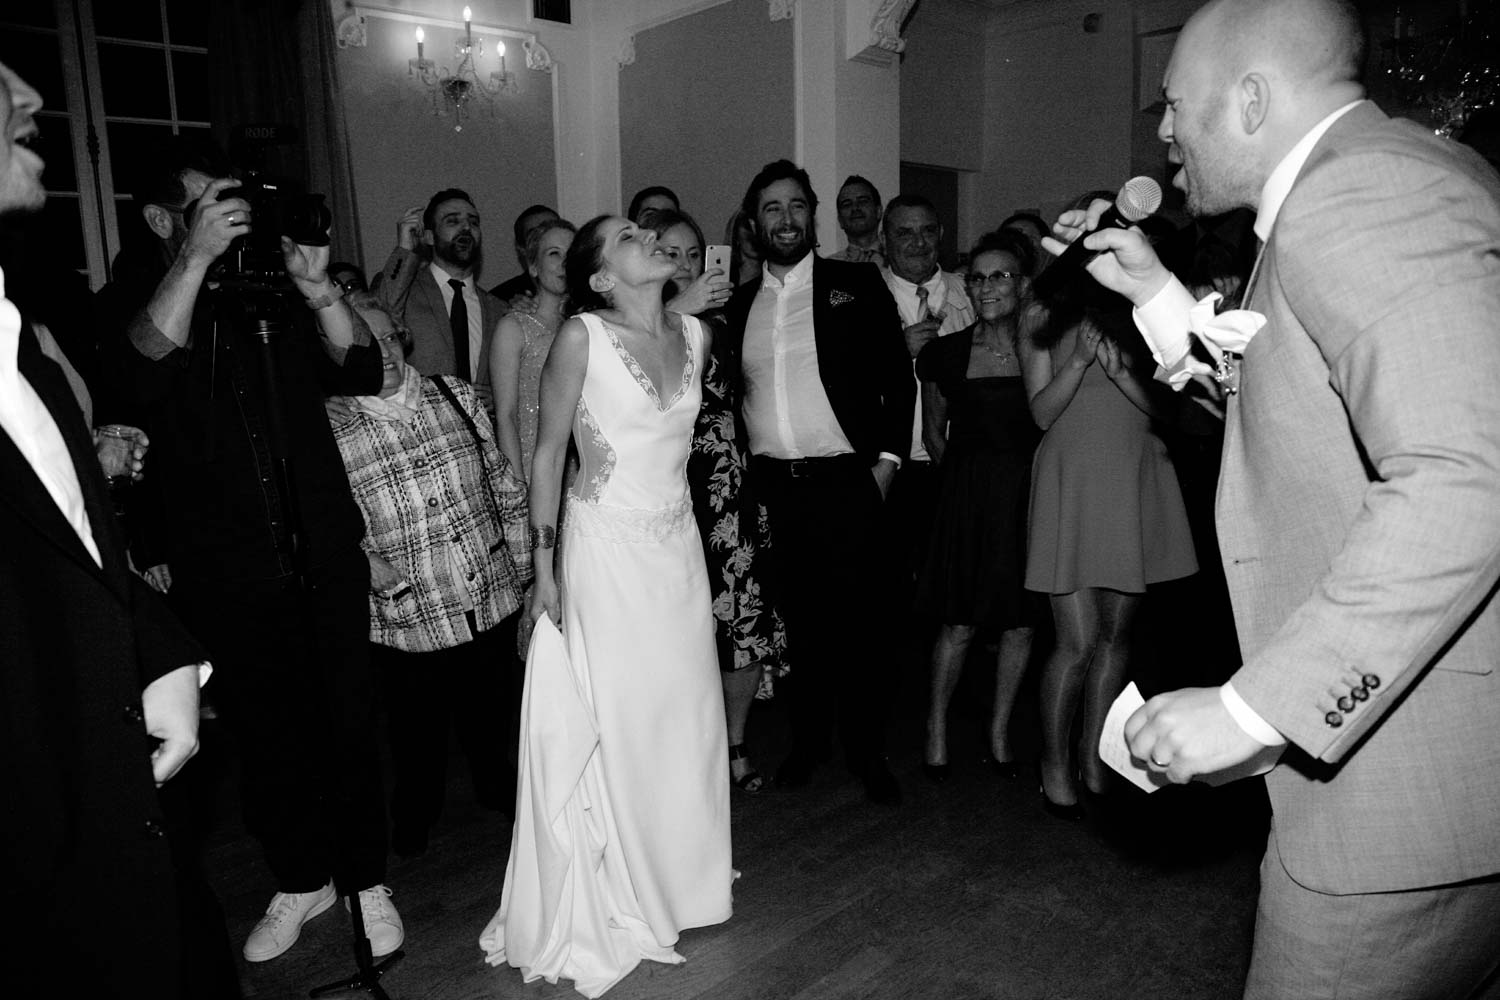 mariage-soiree-chant-couple